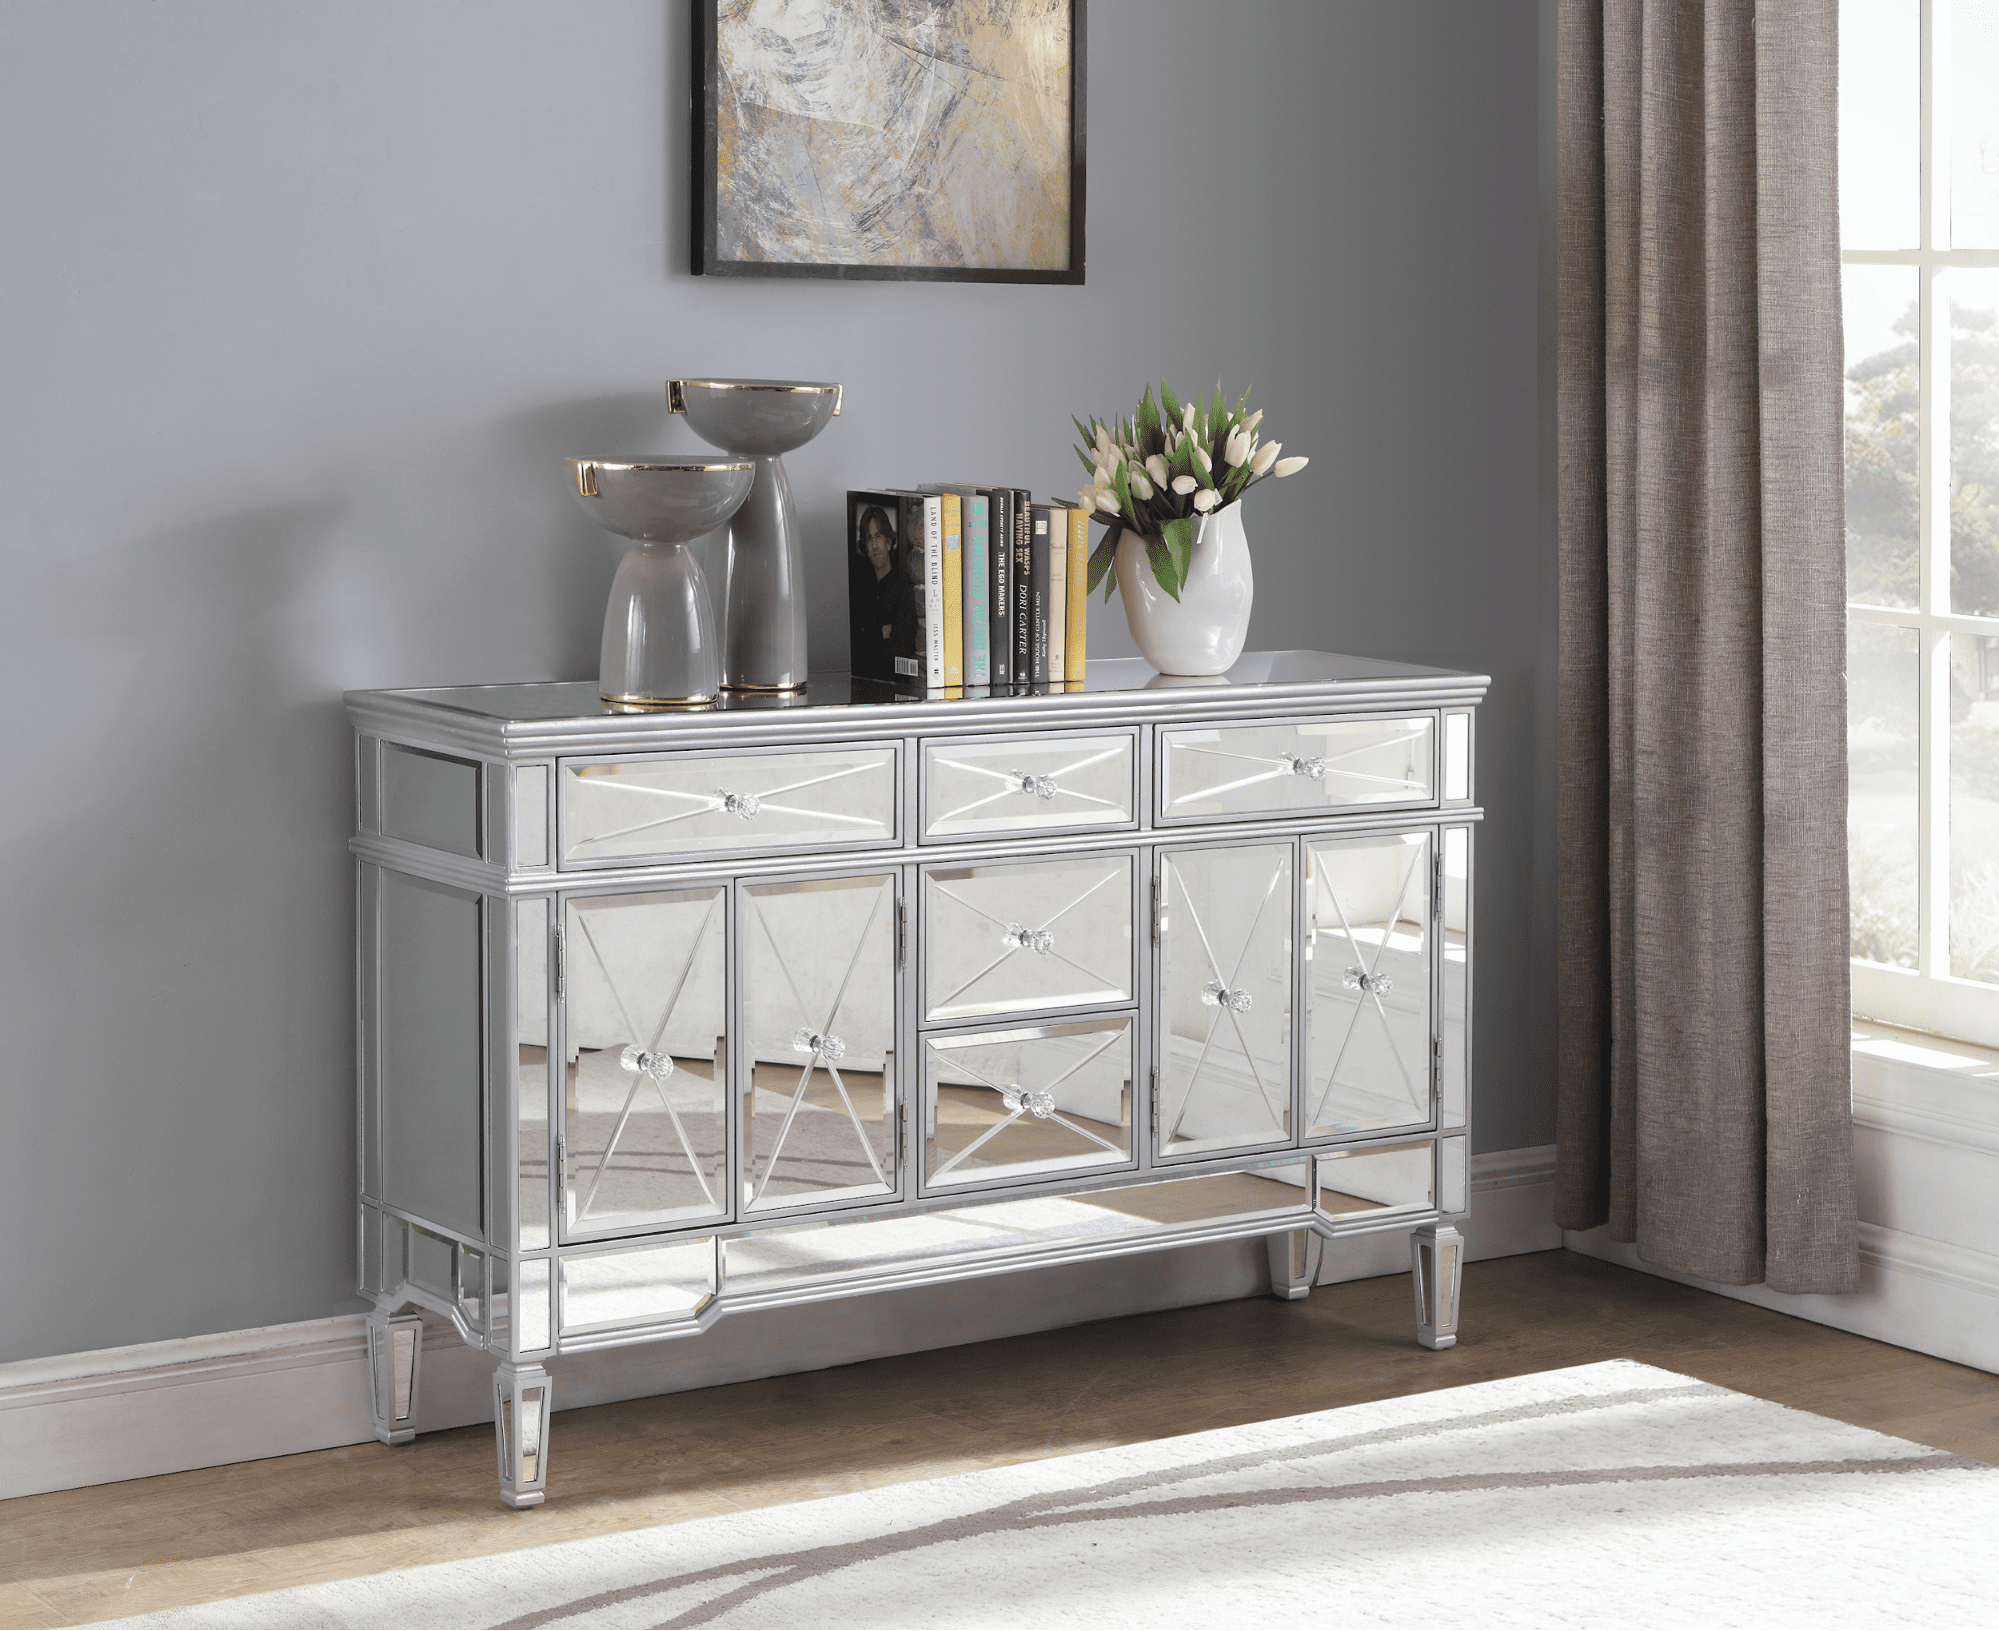 Get your glam on: How to make a statement with a mirrored dresser